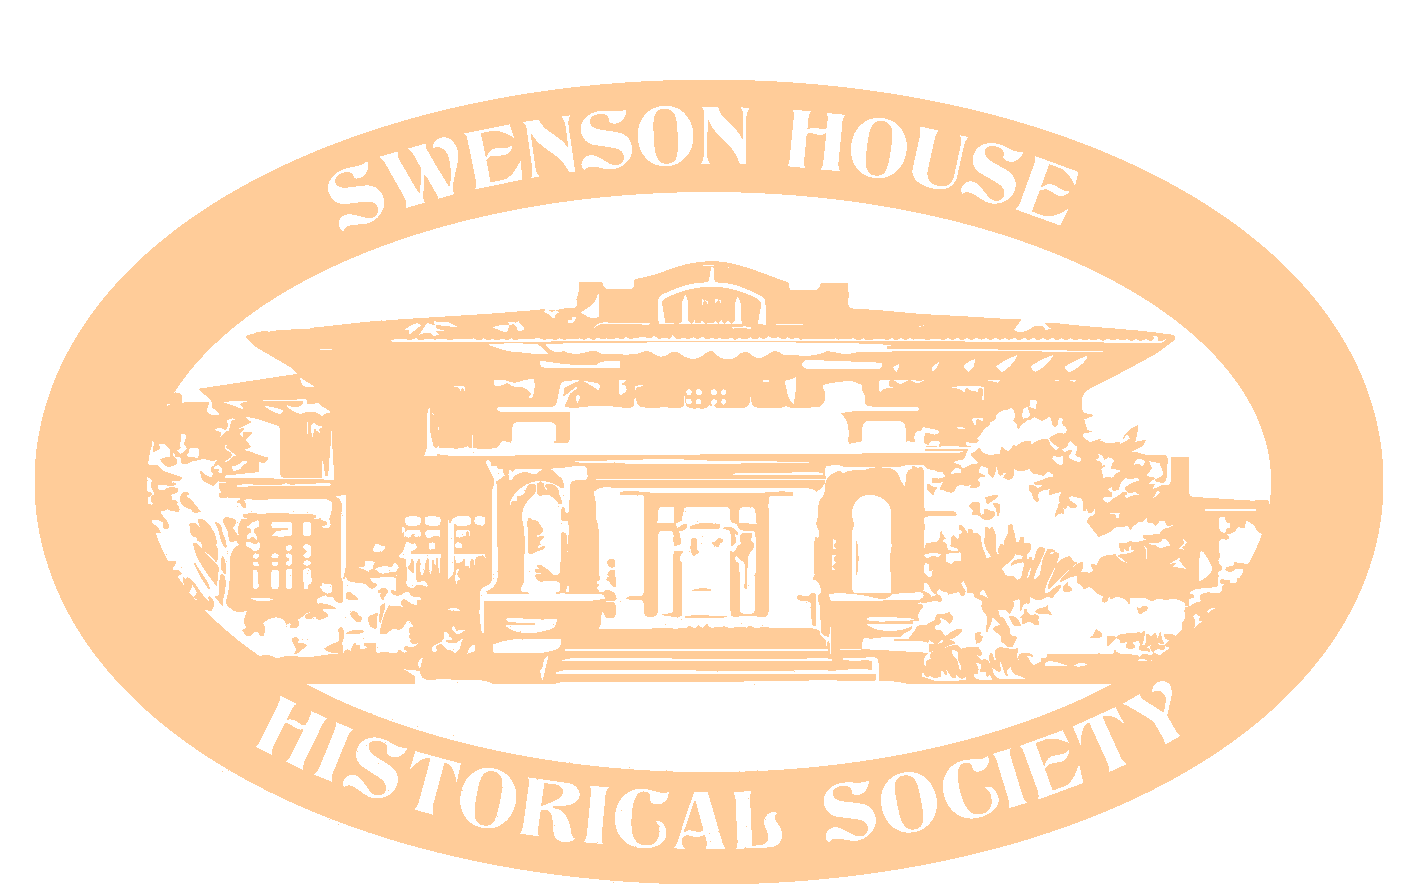 Swenson House Historical Society